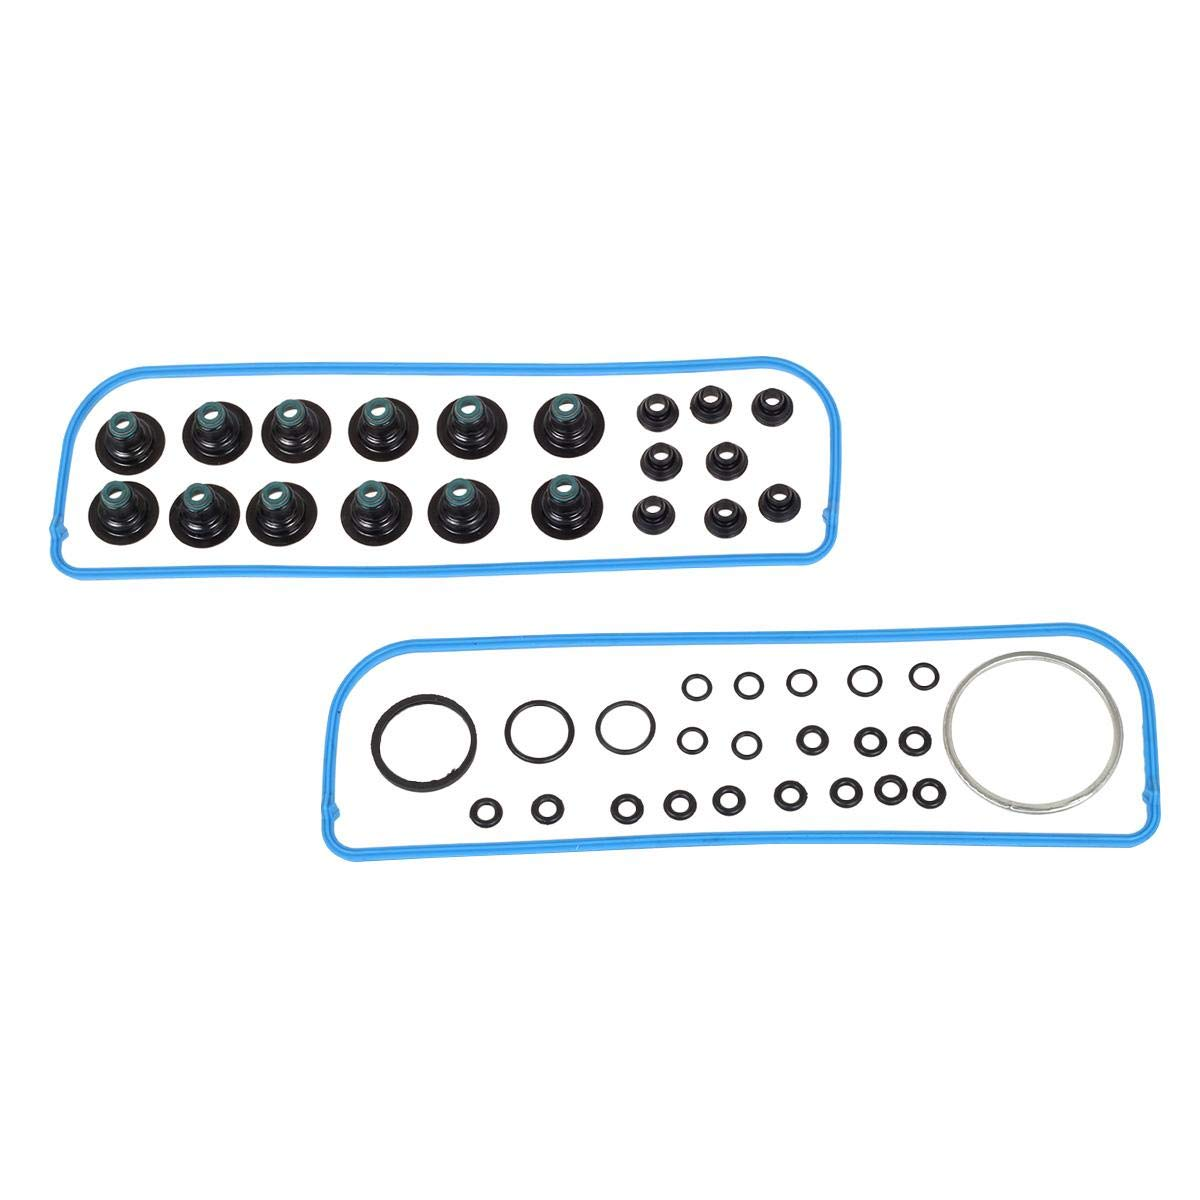 Vincos Cylinder Head Gasket w//Bolts kit Compatible with Buick Century Pontiac Grand Prix 00-03 Compatible with Chevy Lumina Malibu 99 Replacement For Oldsmobile Cutlass 99-03 V6 3.1l